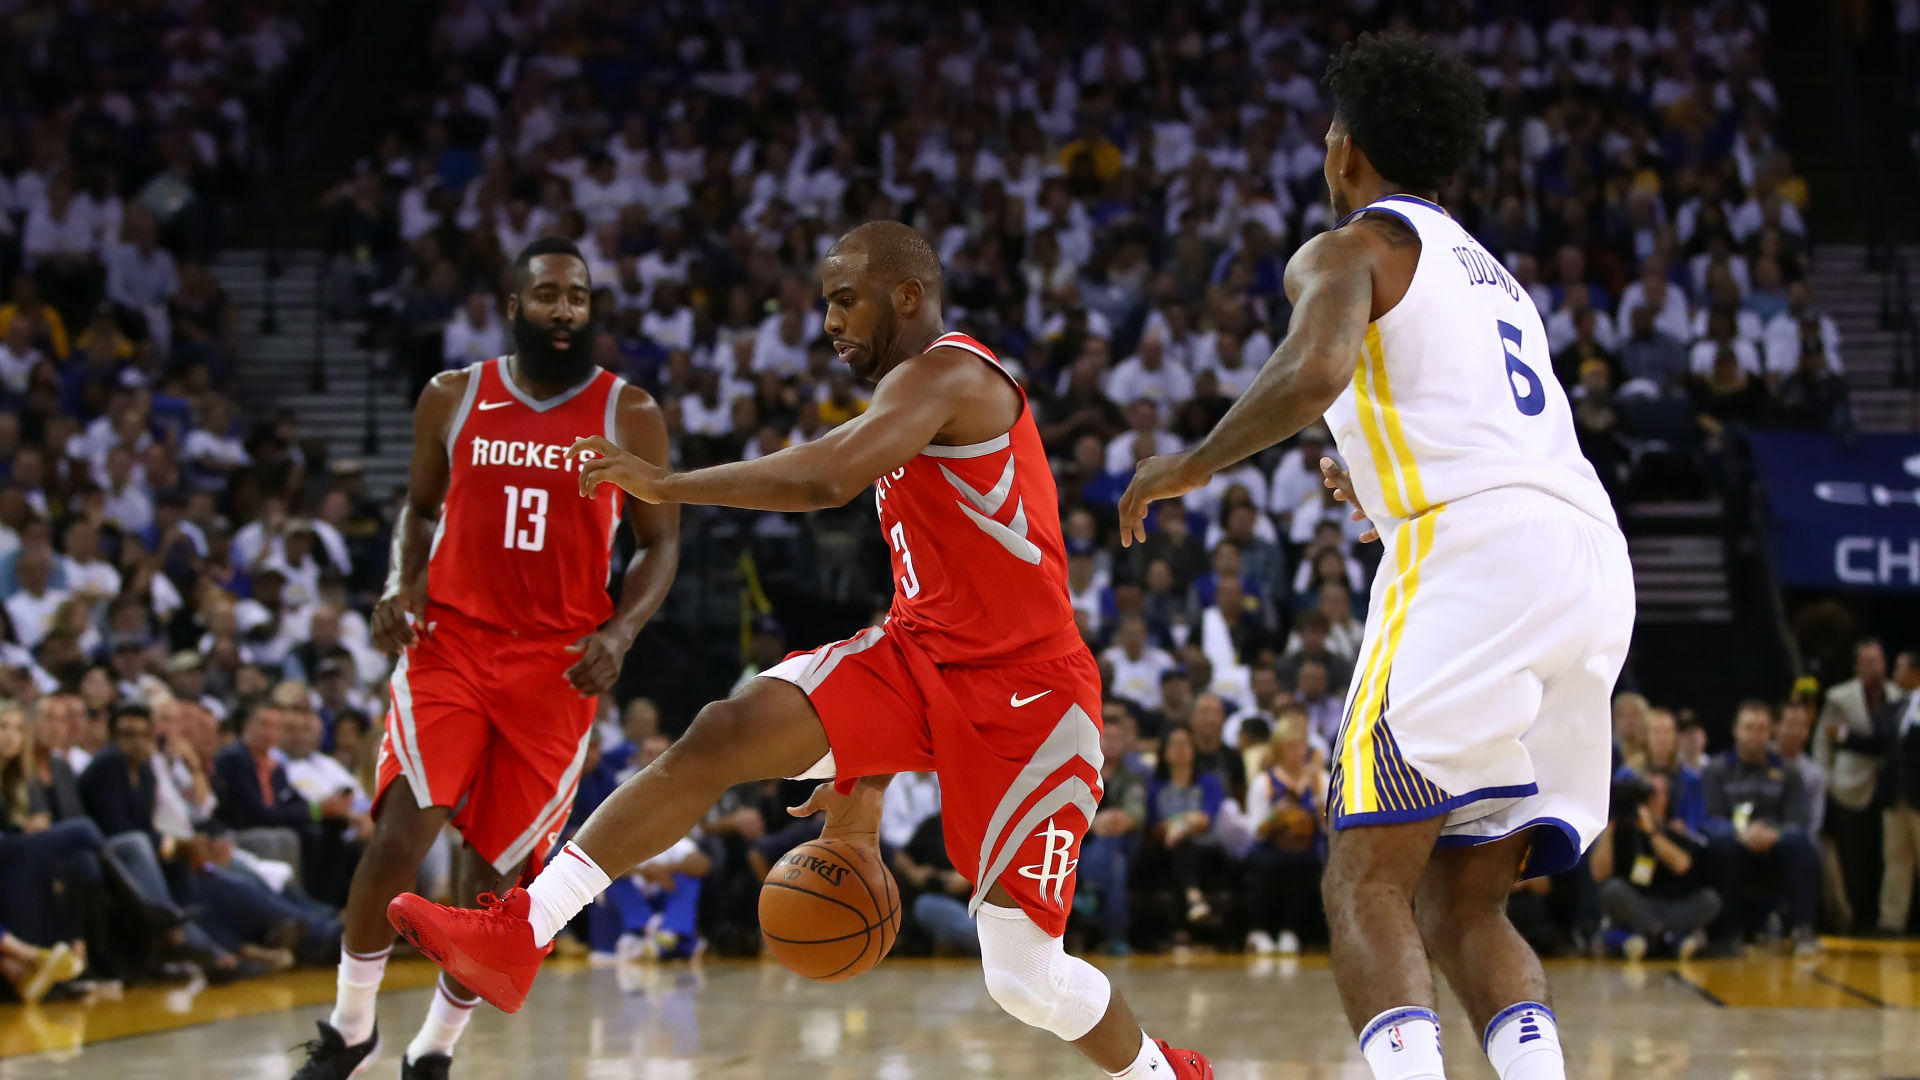 Rockets have last, best chance to put stop to Warriors dynasty